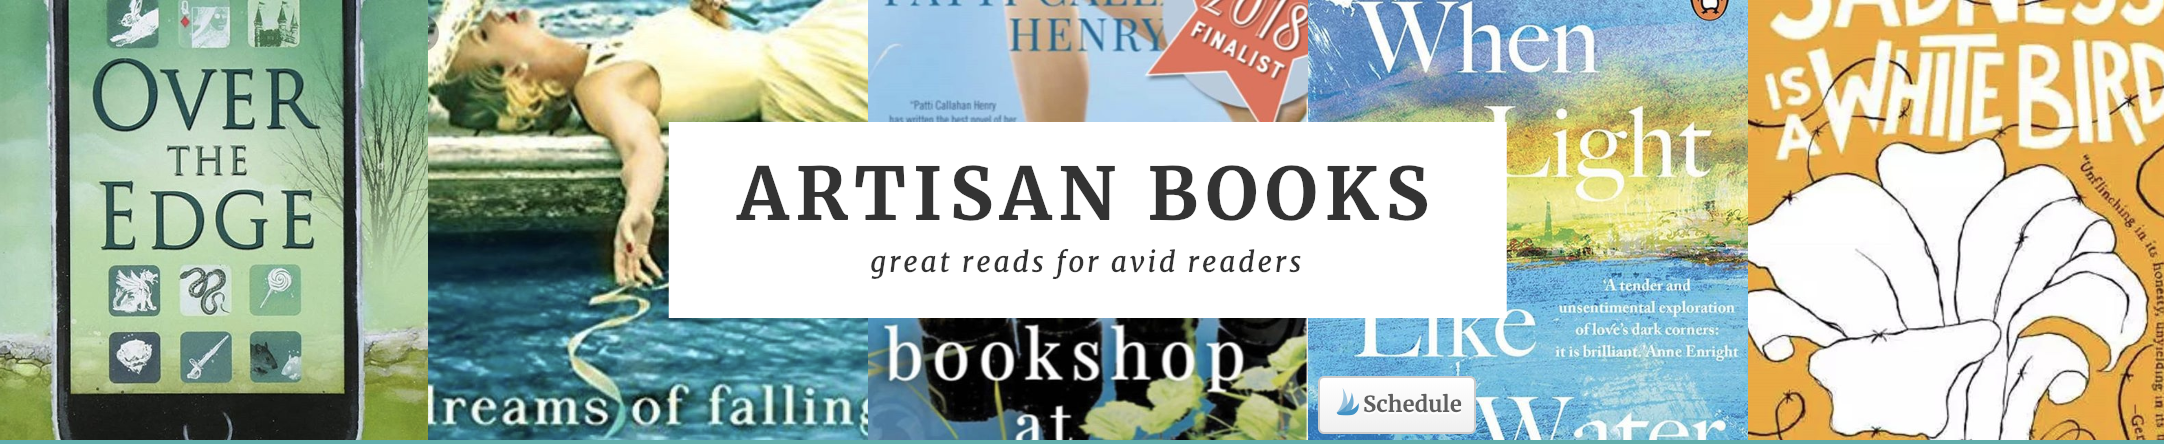 Artisan Book Reviews & Promotion